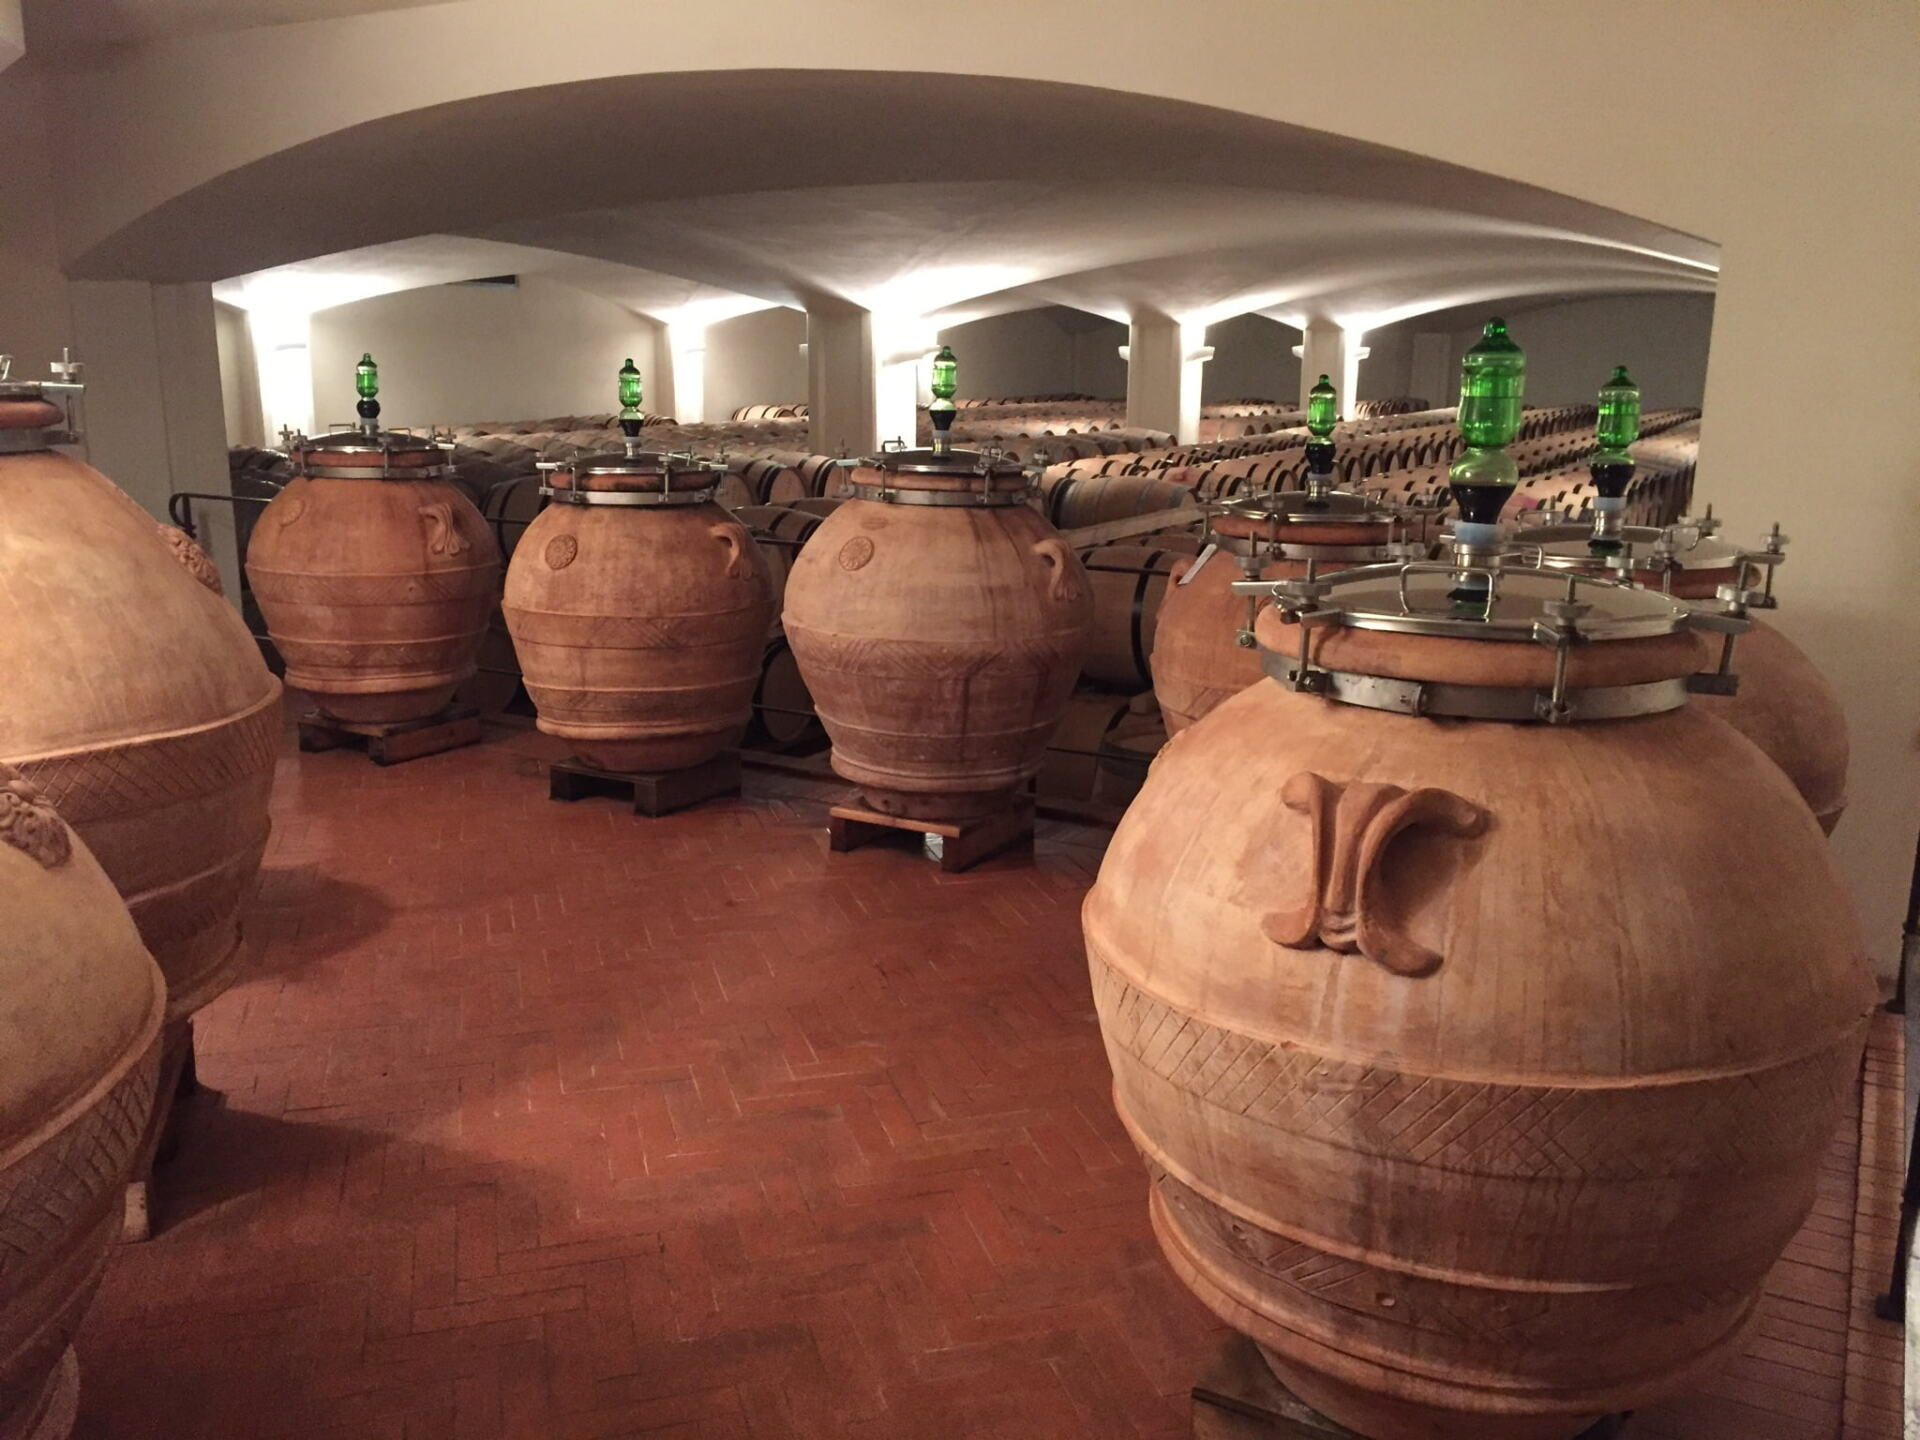 Clay amphora or Orci as they are known in Tuscany